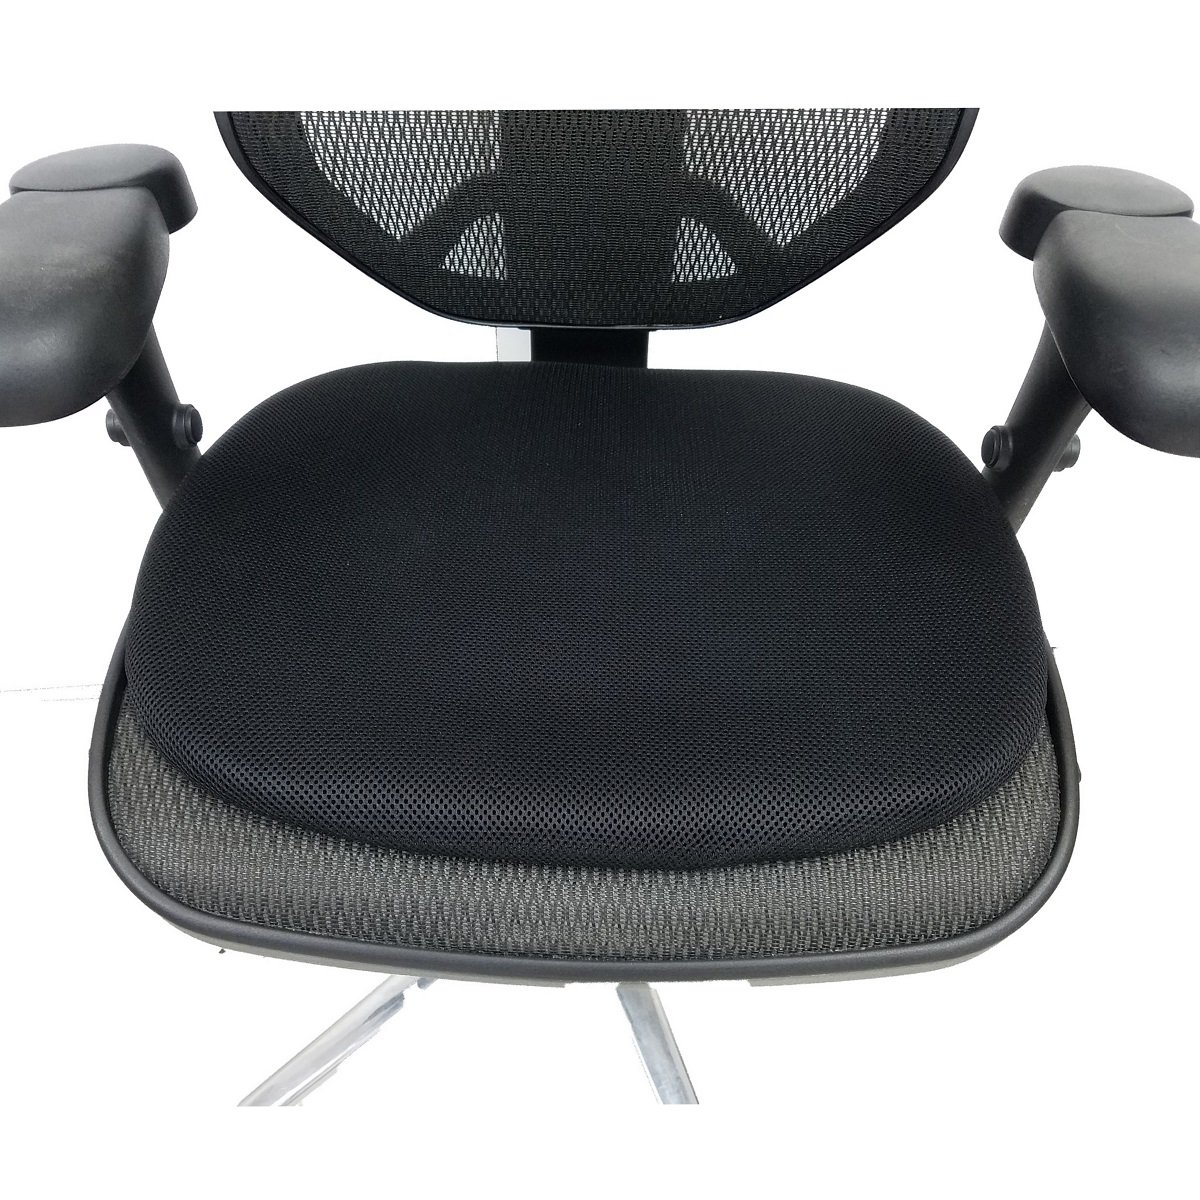 CONFORMAX New ERA Office Gel SEAT CUSHION-L18A 18Lx20FWx14RW, with Removable Cover-AIRMAX